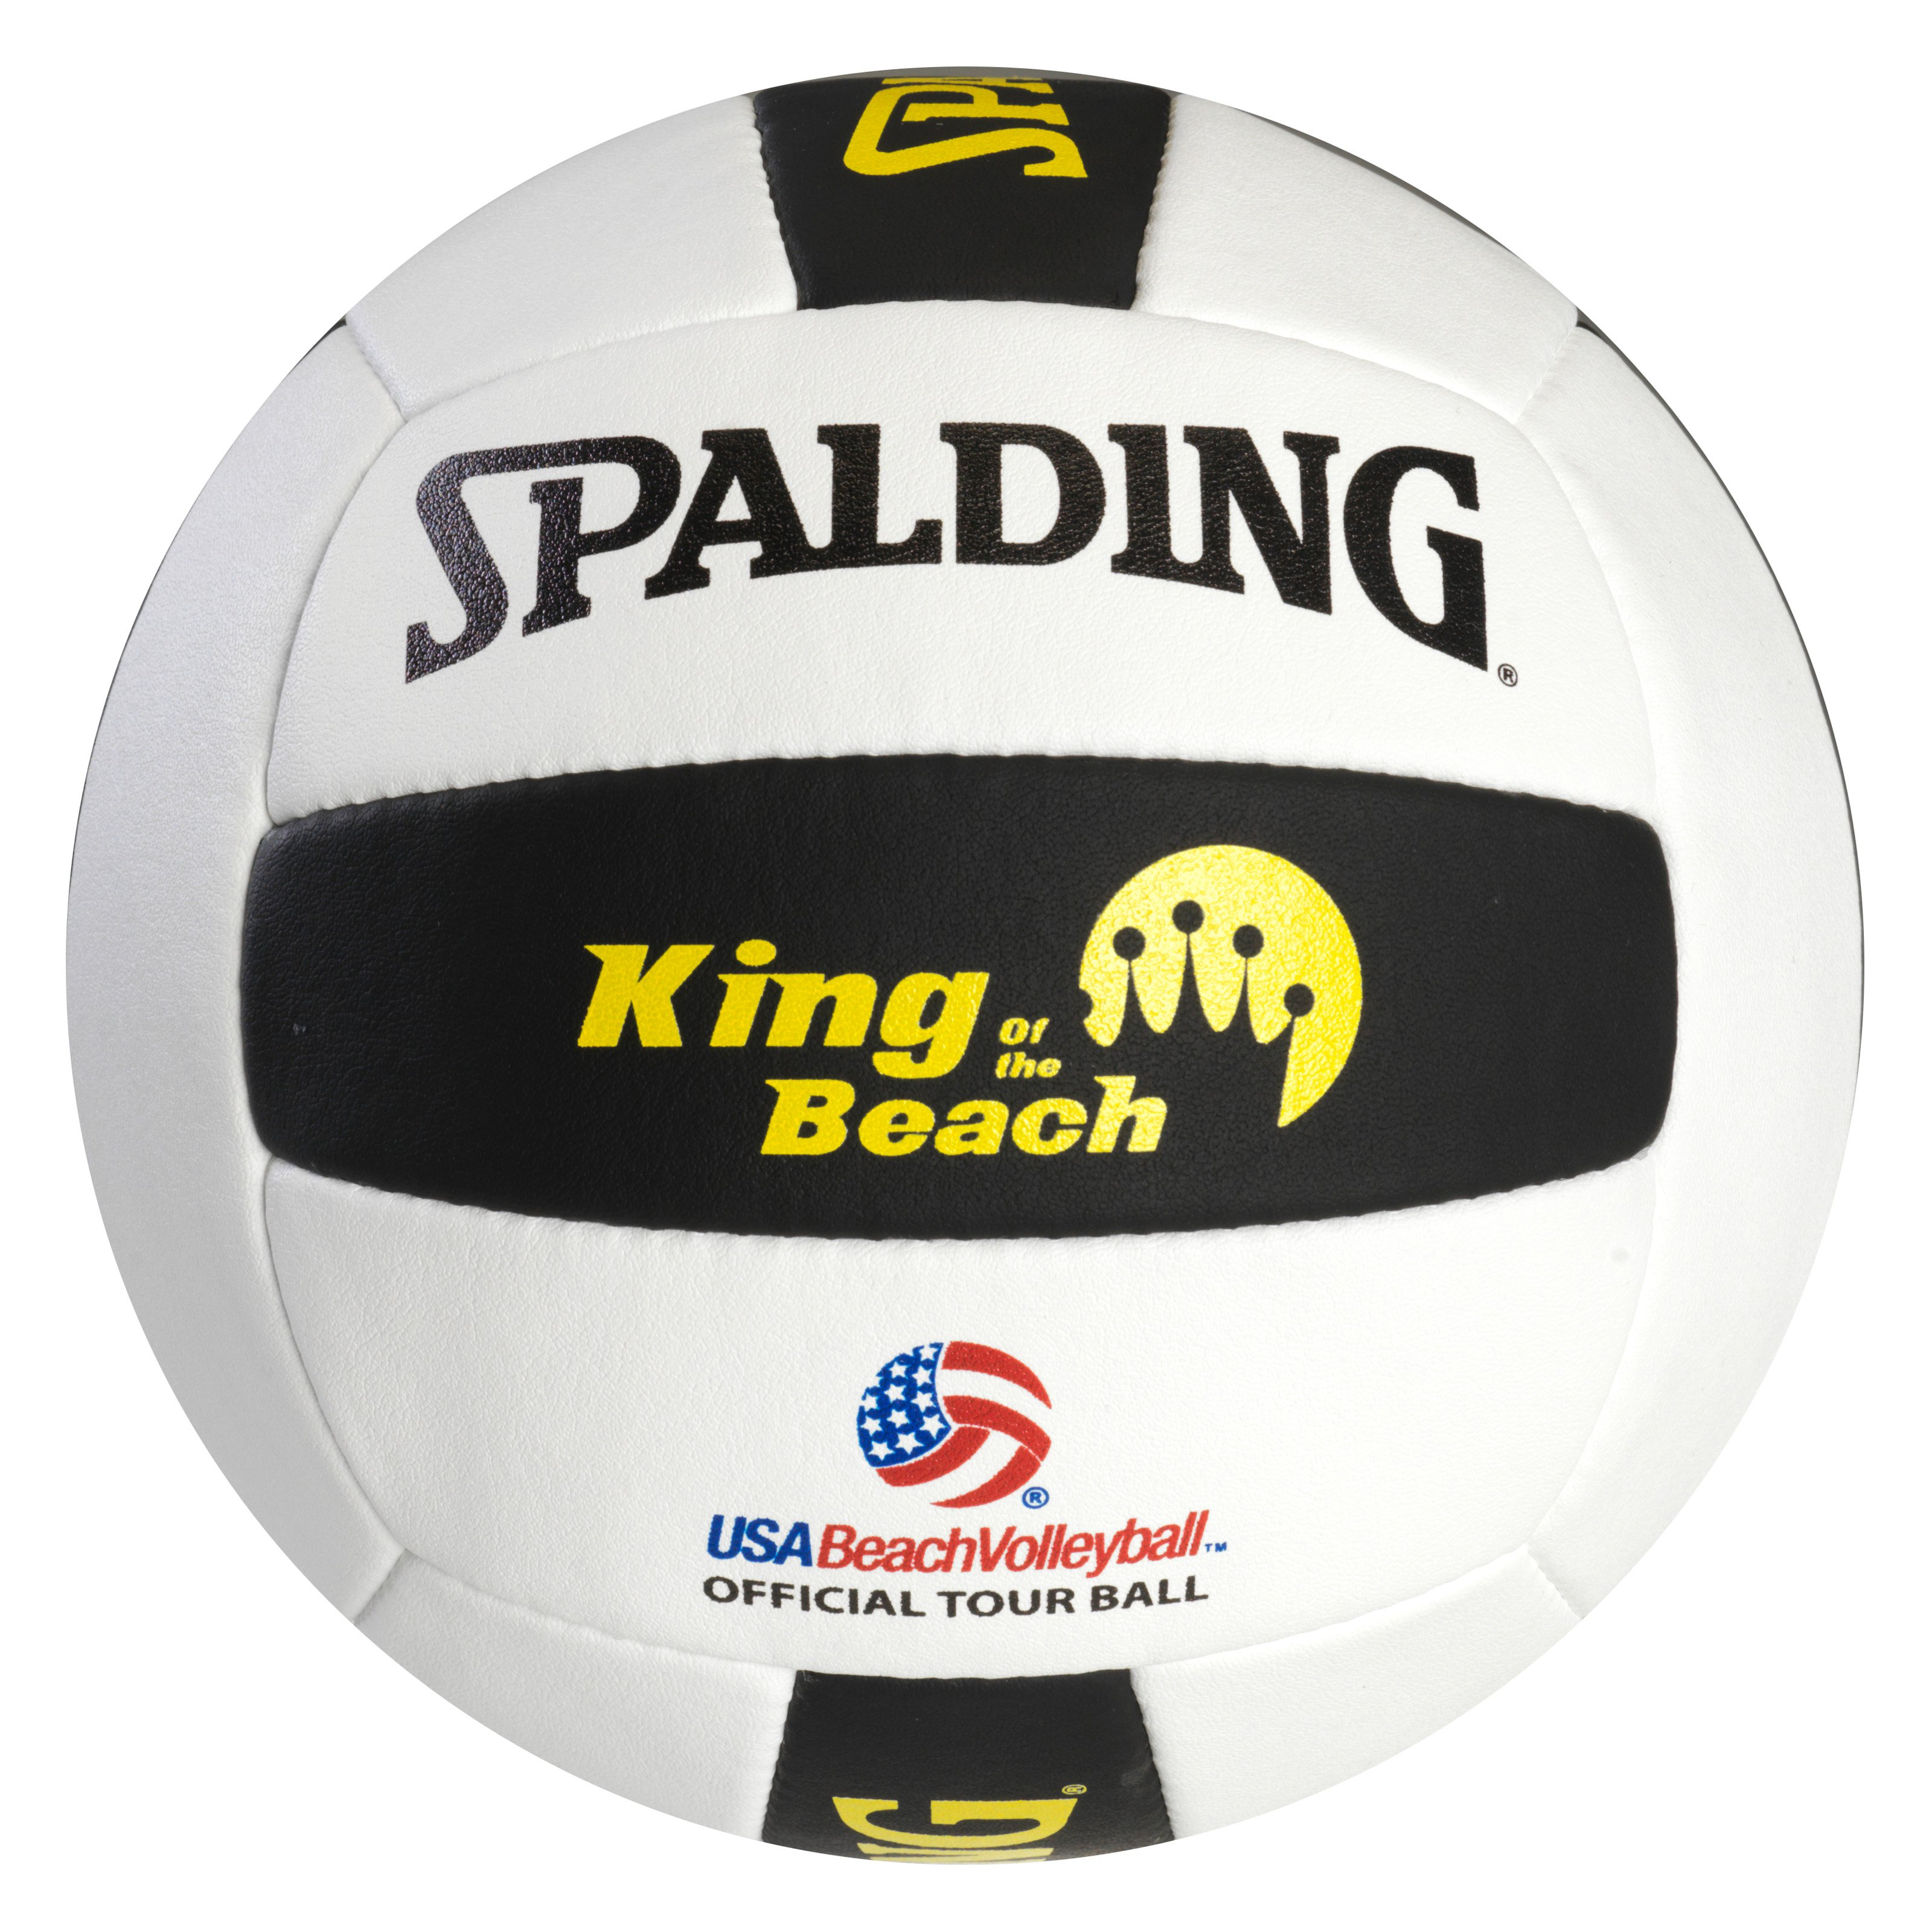 Spalding King of the Beach USA Beach Official Tour Volleyball by Spalding